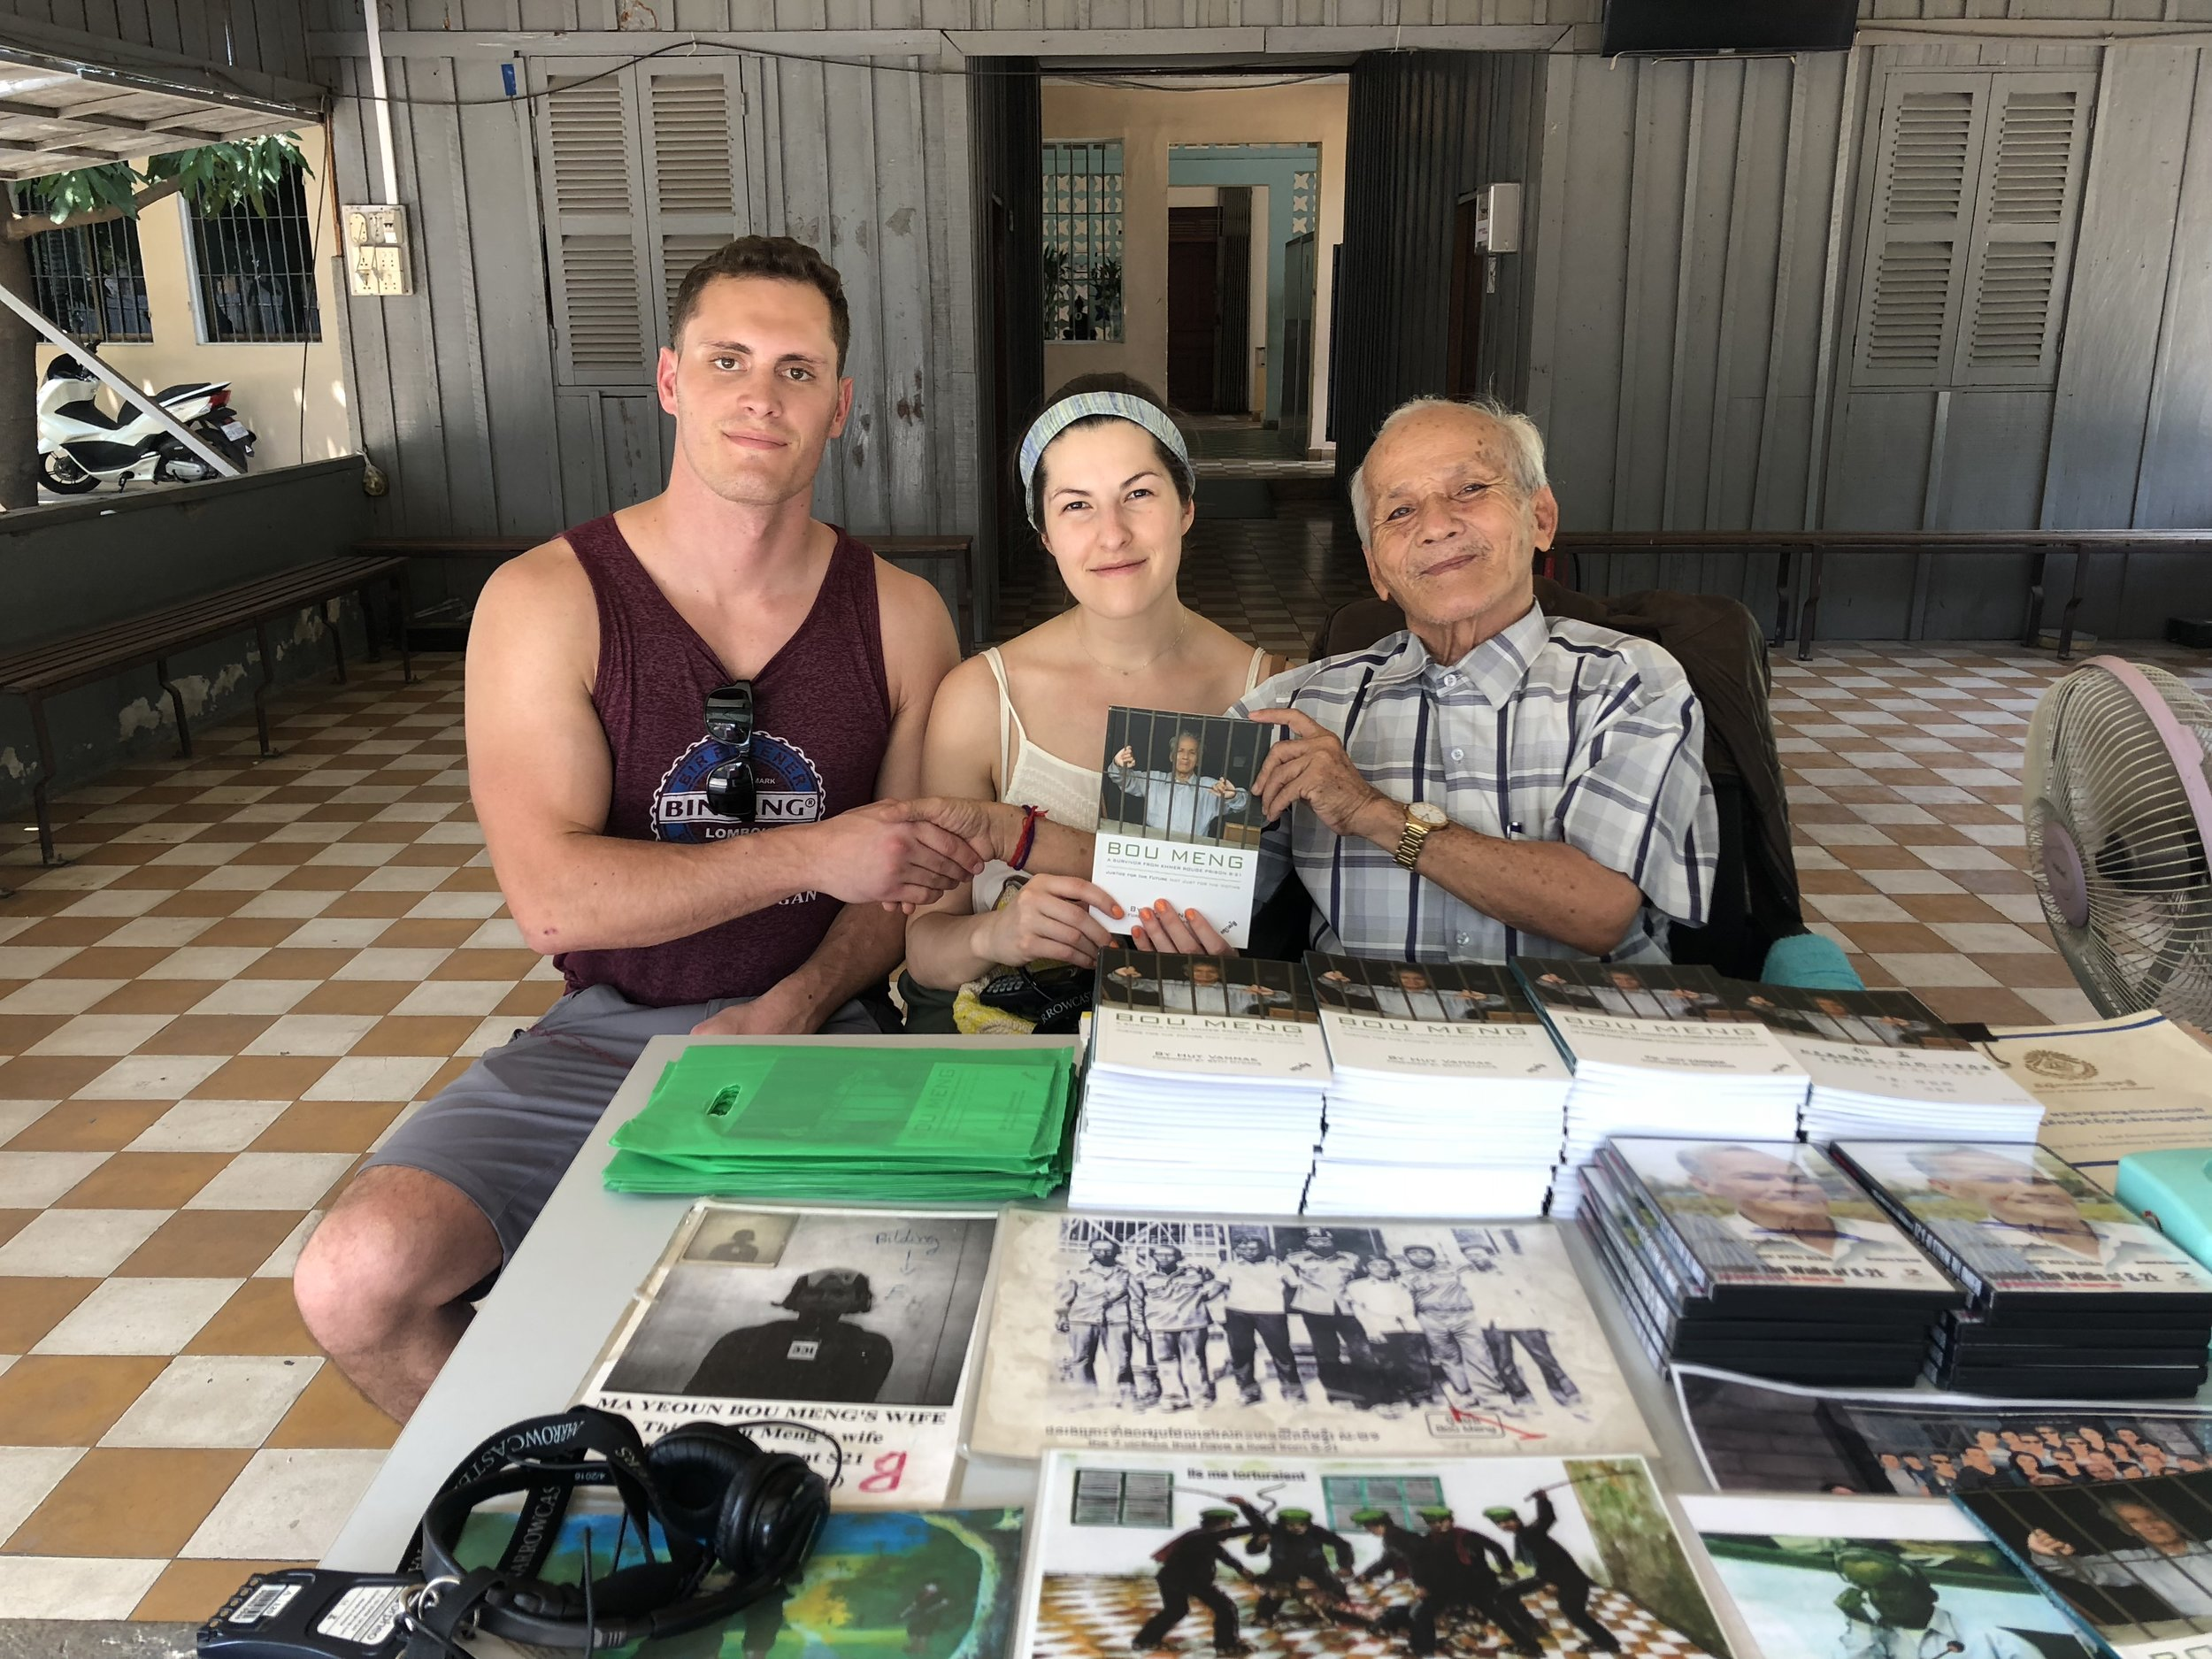 Kevin and I with Bou Meng, one of the survivors of the S-21 Torture Camp.